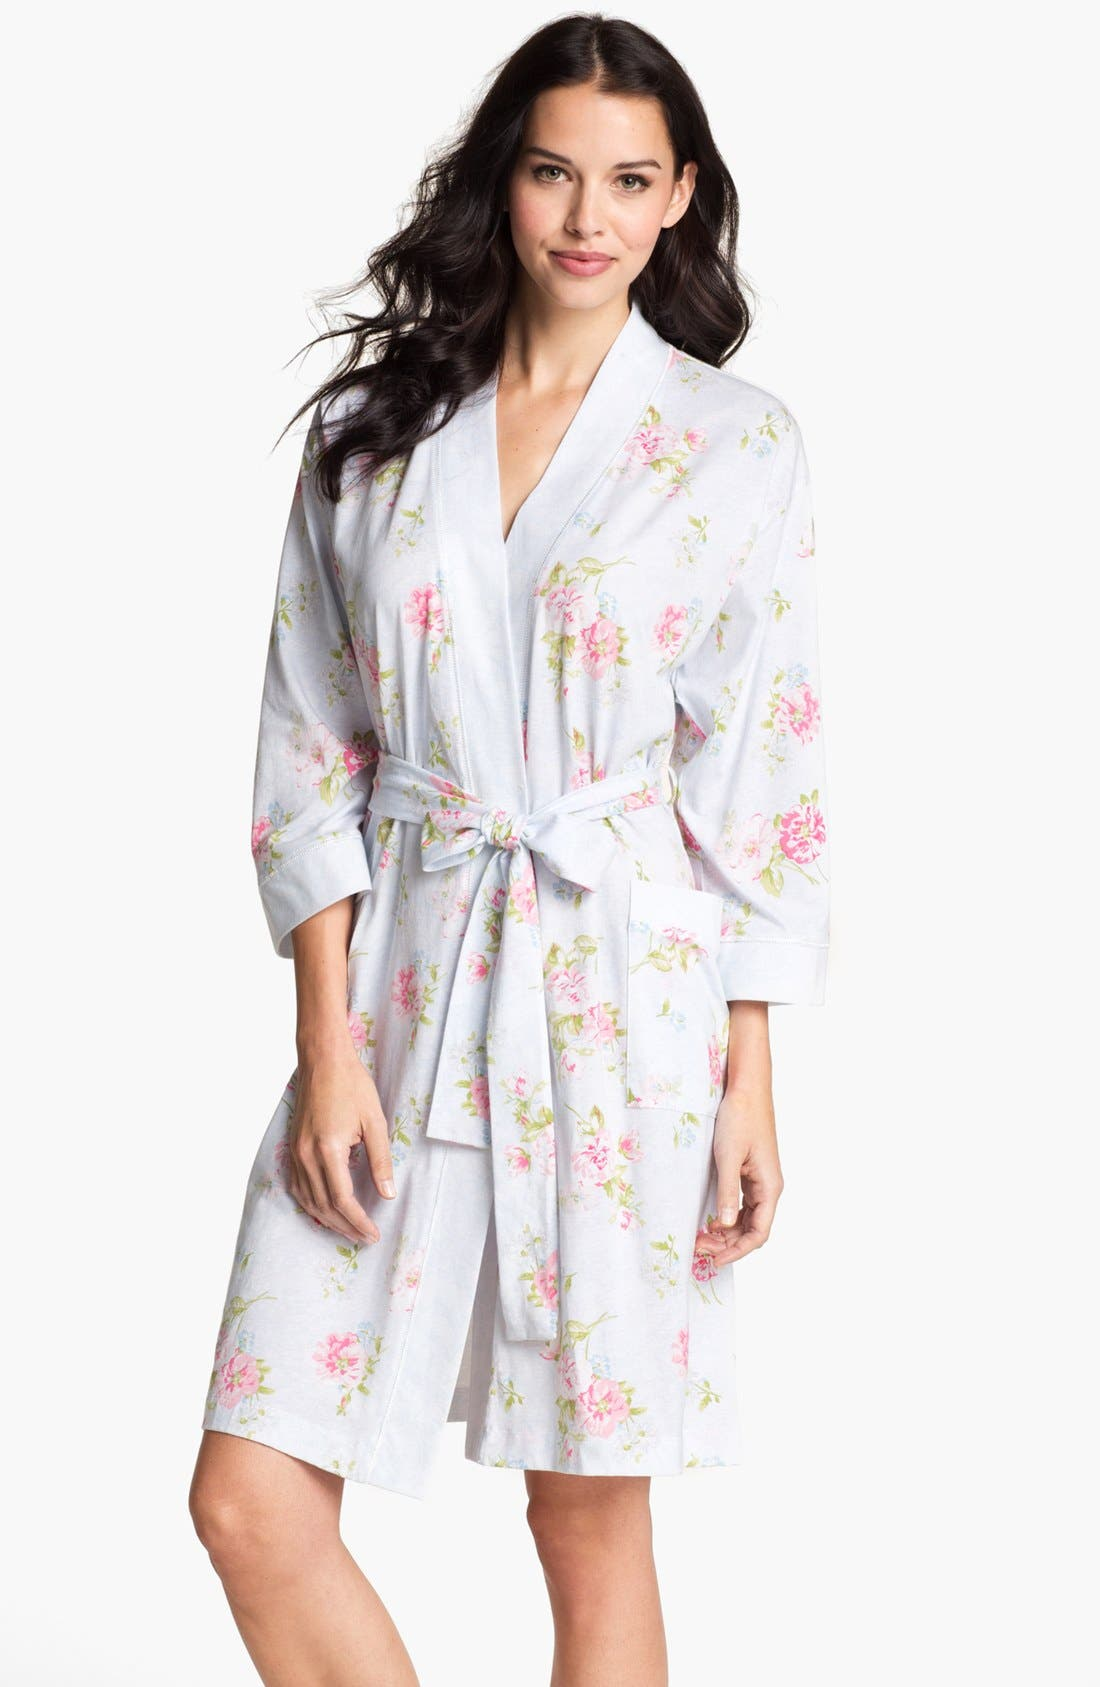 Alternate Image 1 Selected - Carole Hochman Designs Short Floral Print Robe